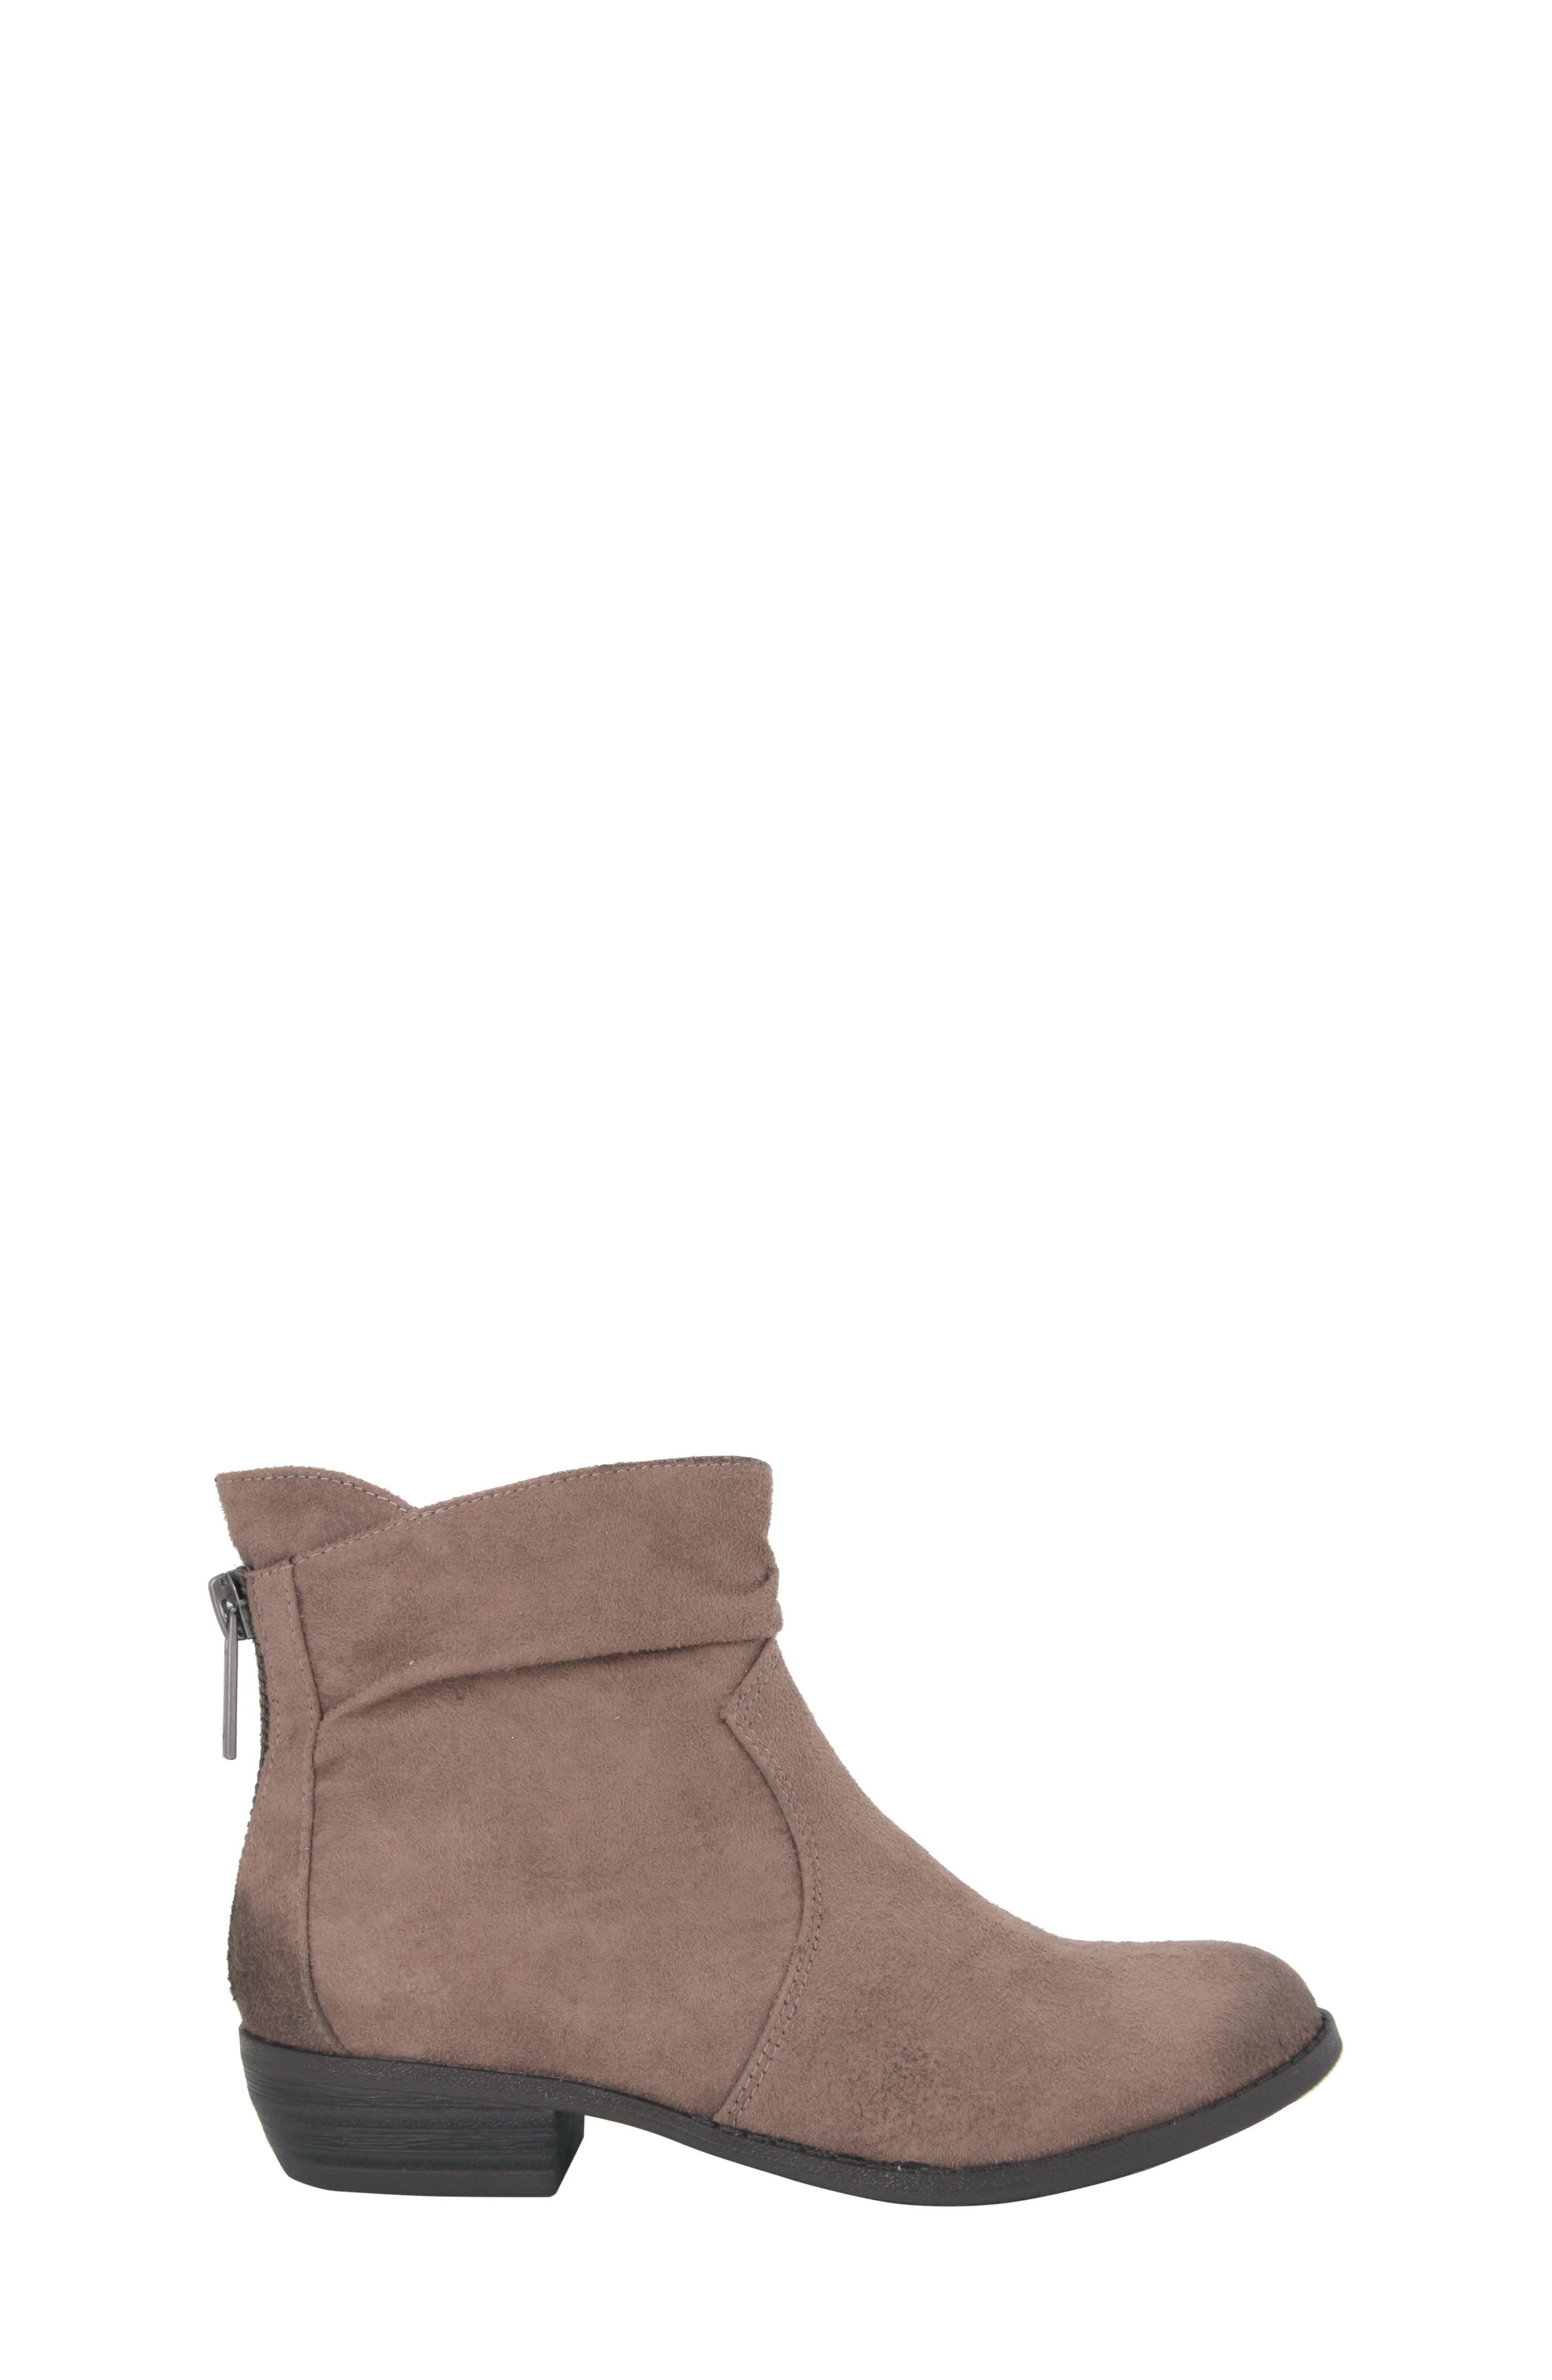 Delia Slightly Slouchy Bootie,                             Alternate thumbnail 3, color,                             Taupe Microsuede